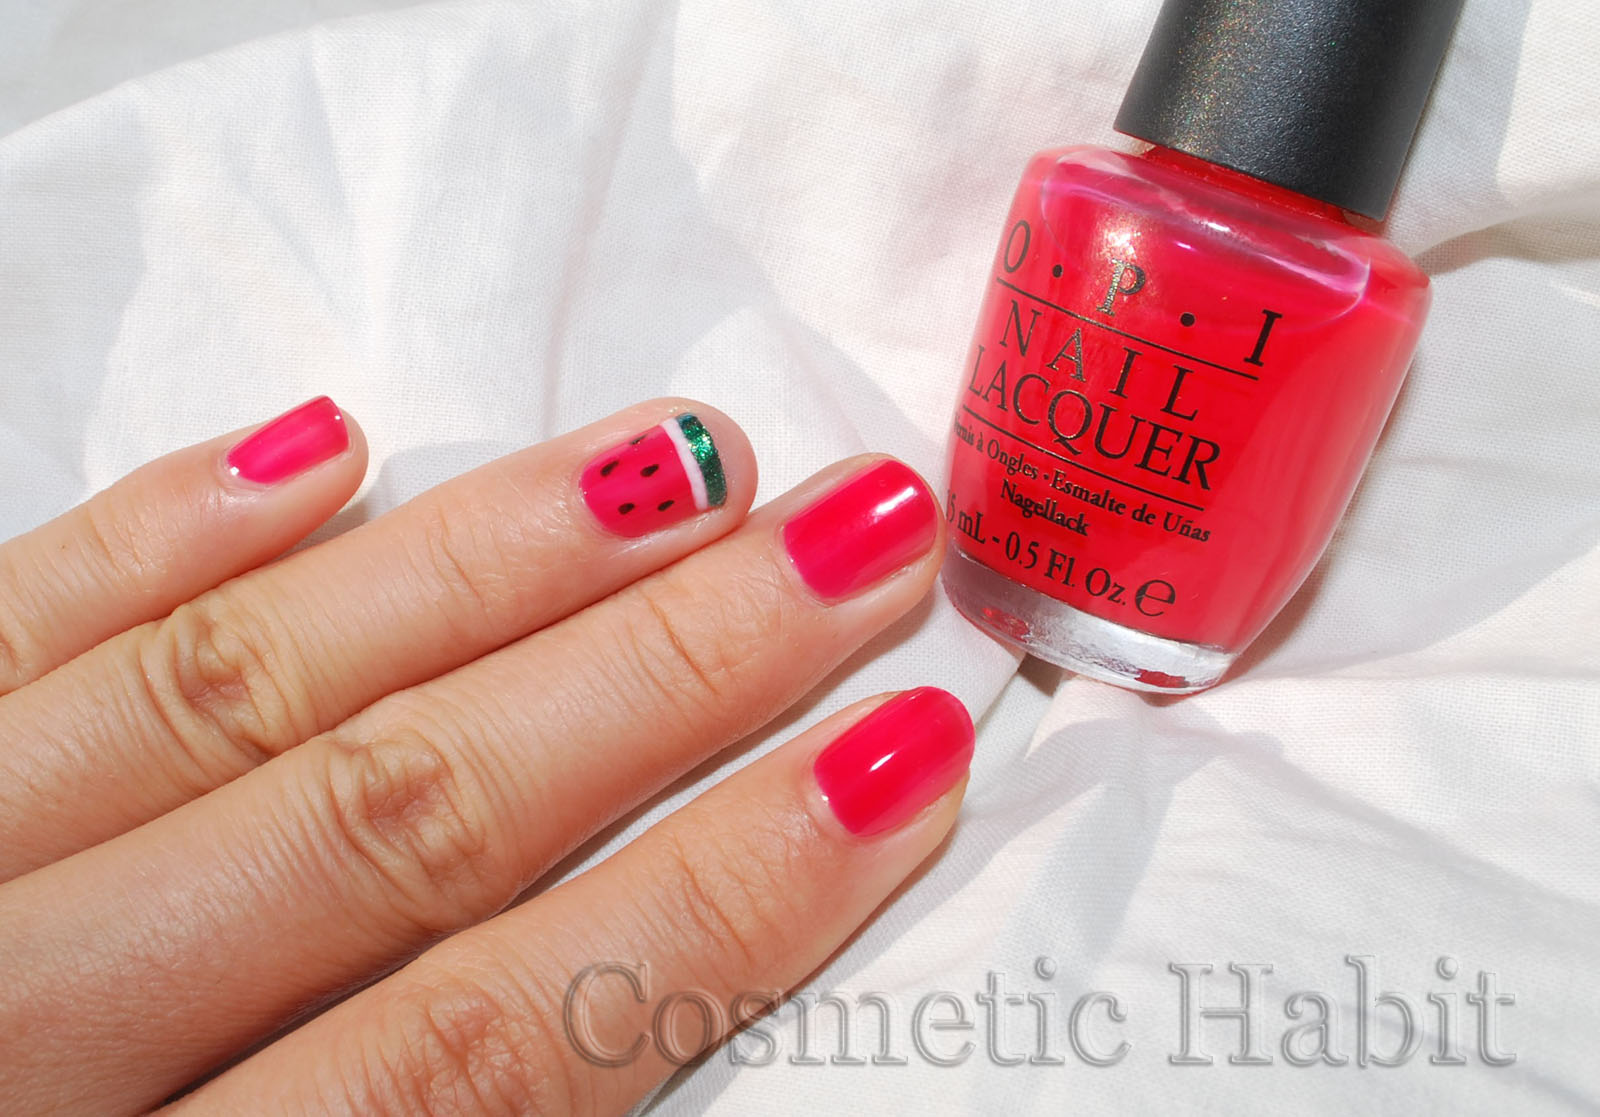 Cosmetic Habit: Watermelon Nail Art Design: Photos, Swatches